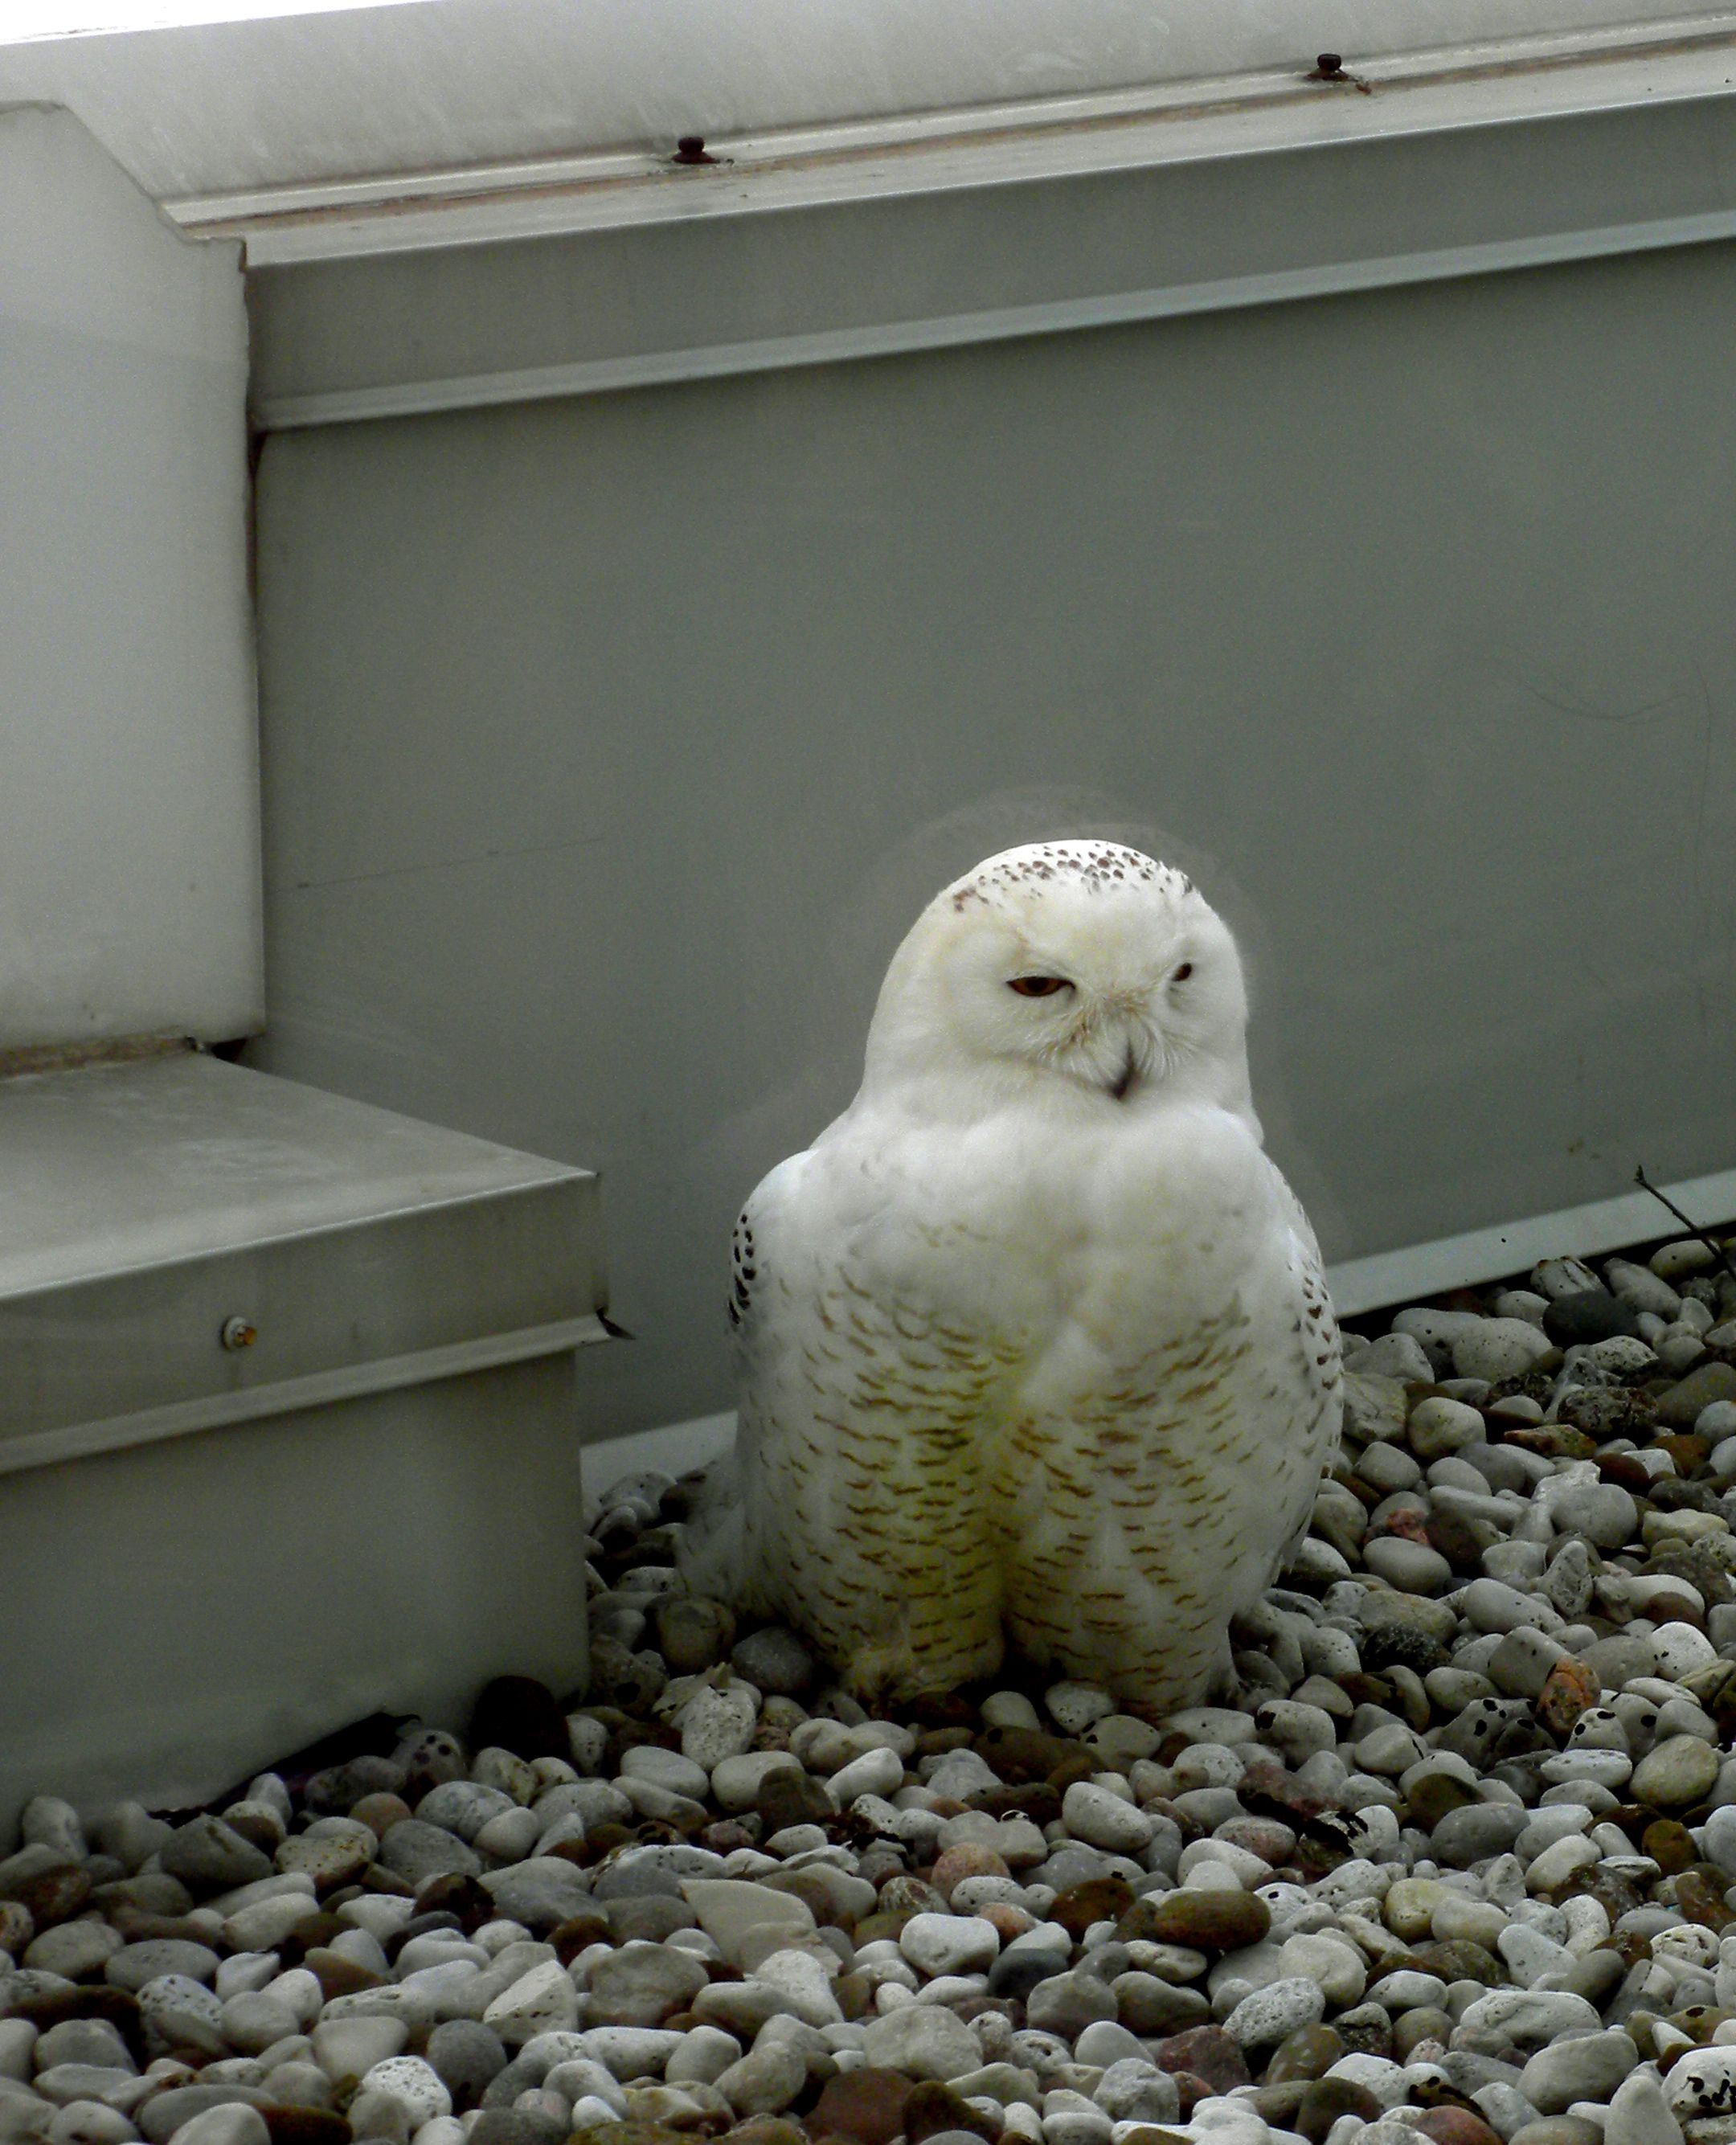 Snowy Owl on an office building window ledge. Imagine trying to concentrate on work!